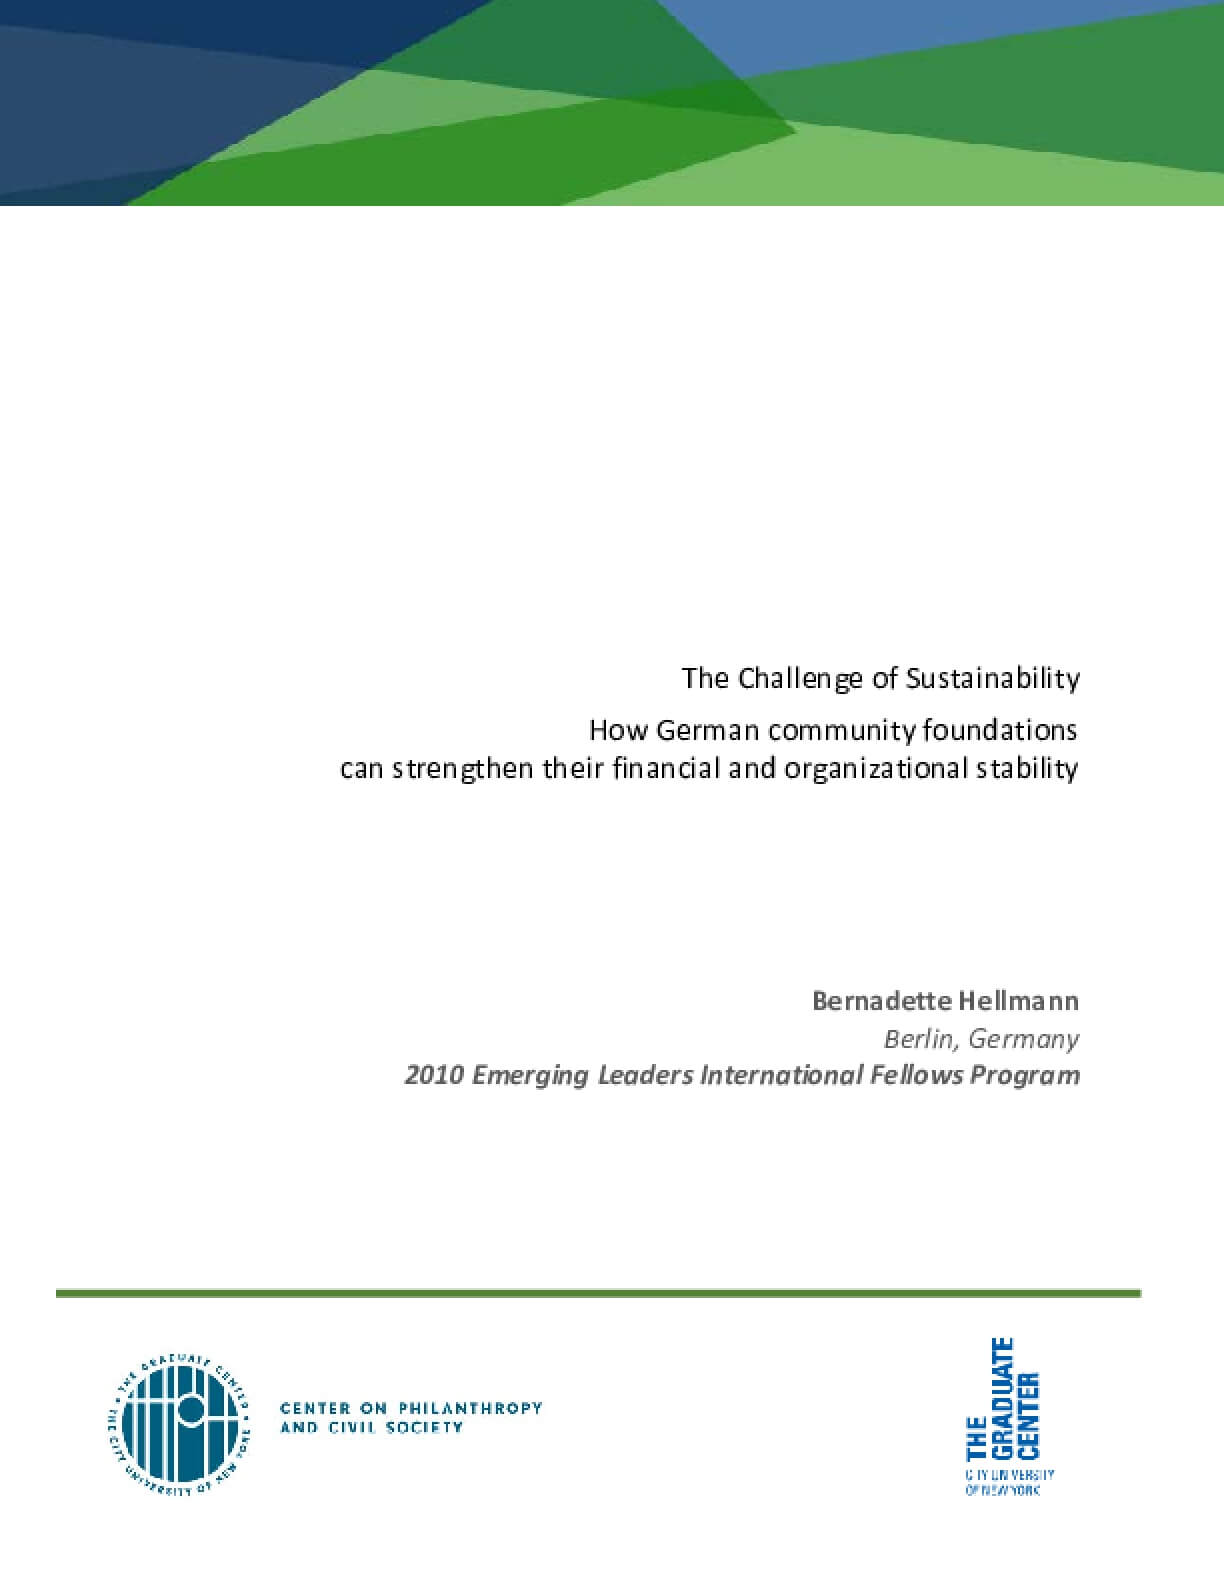 The challenge of sustainability: How German community foundations can strengthen their financial and organizational stability